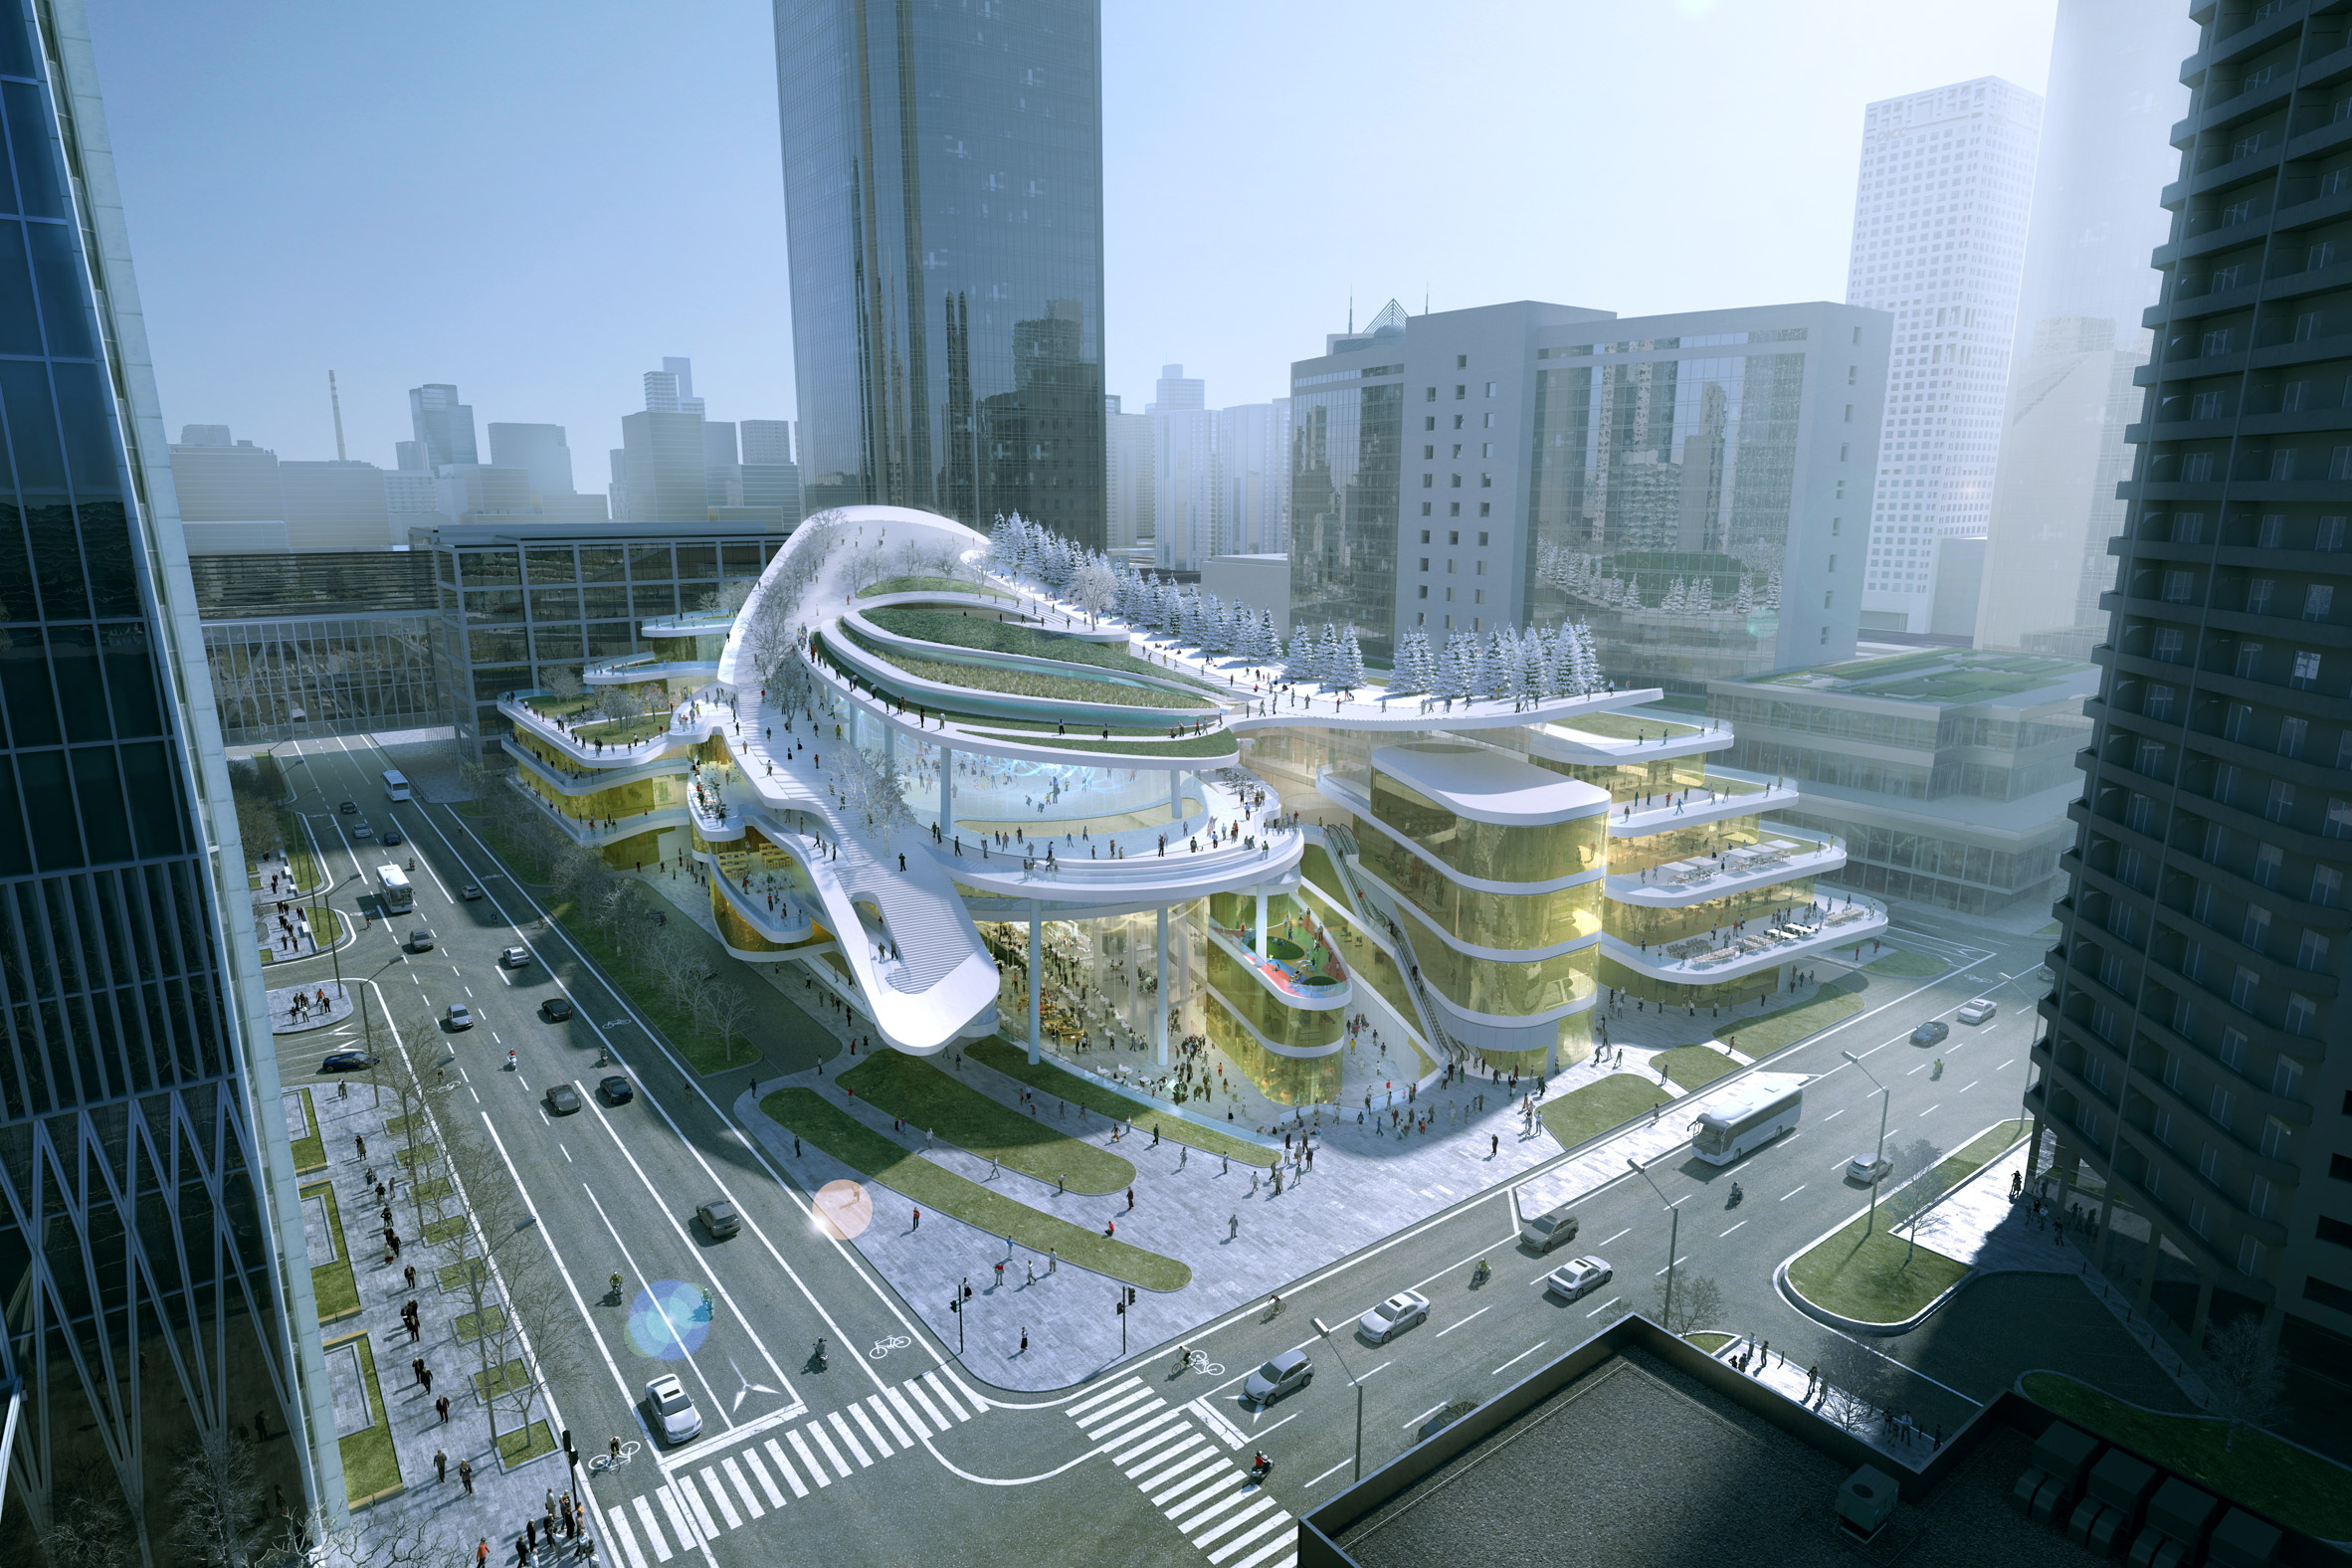 Sledding path to loop around roof garden of Beijing civic centre by Andrew Bromberg